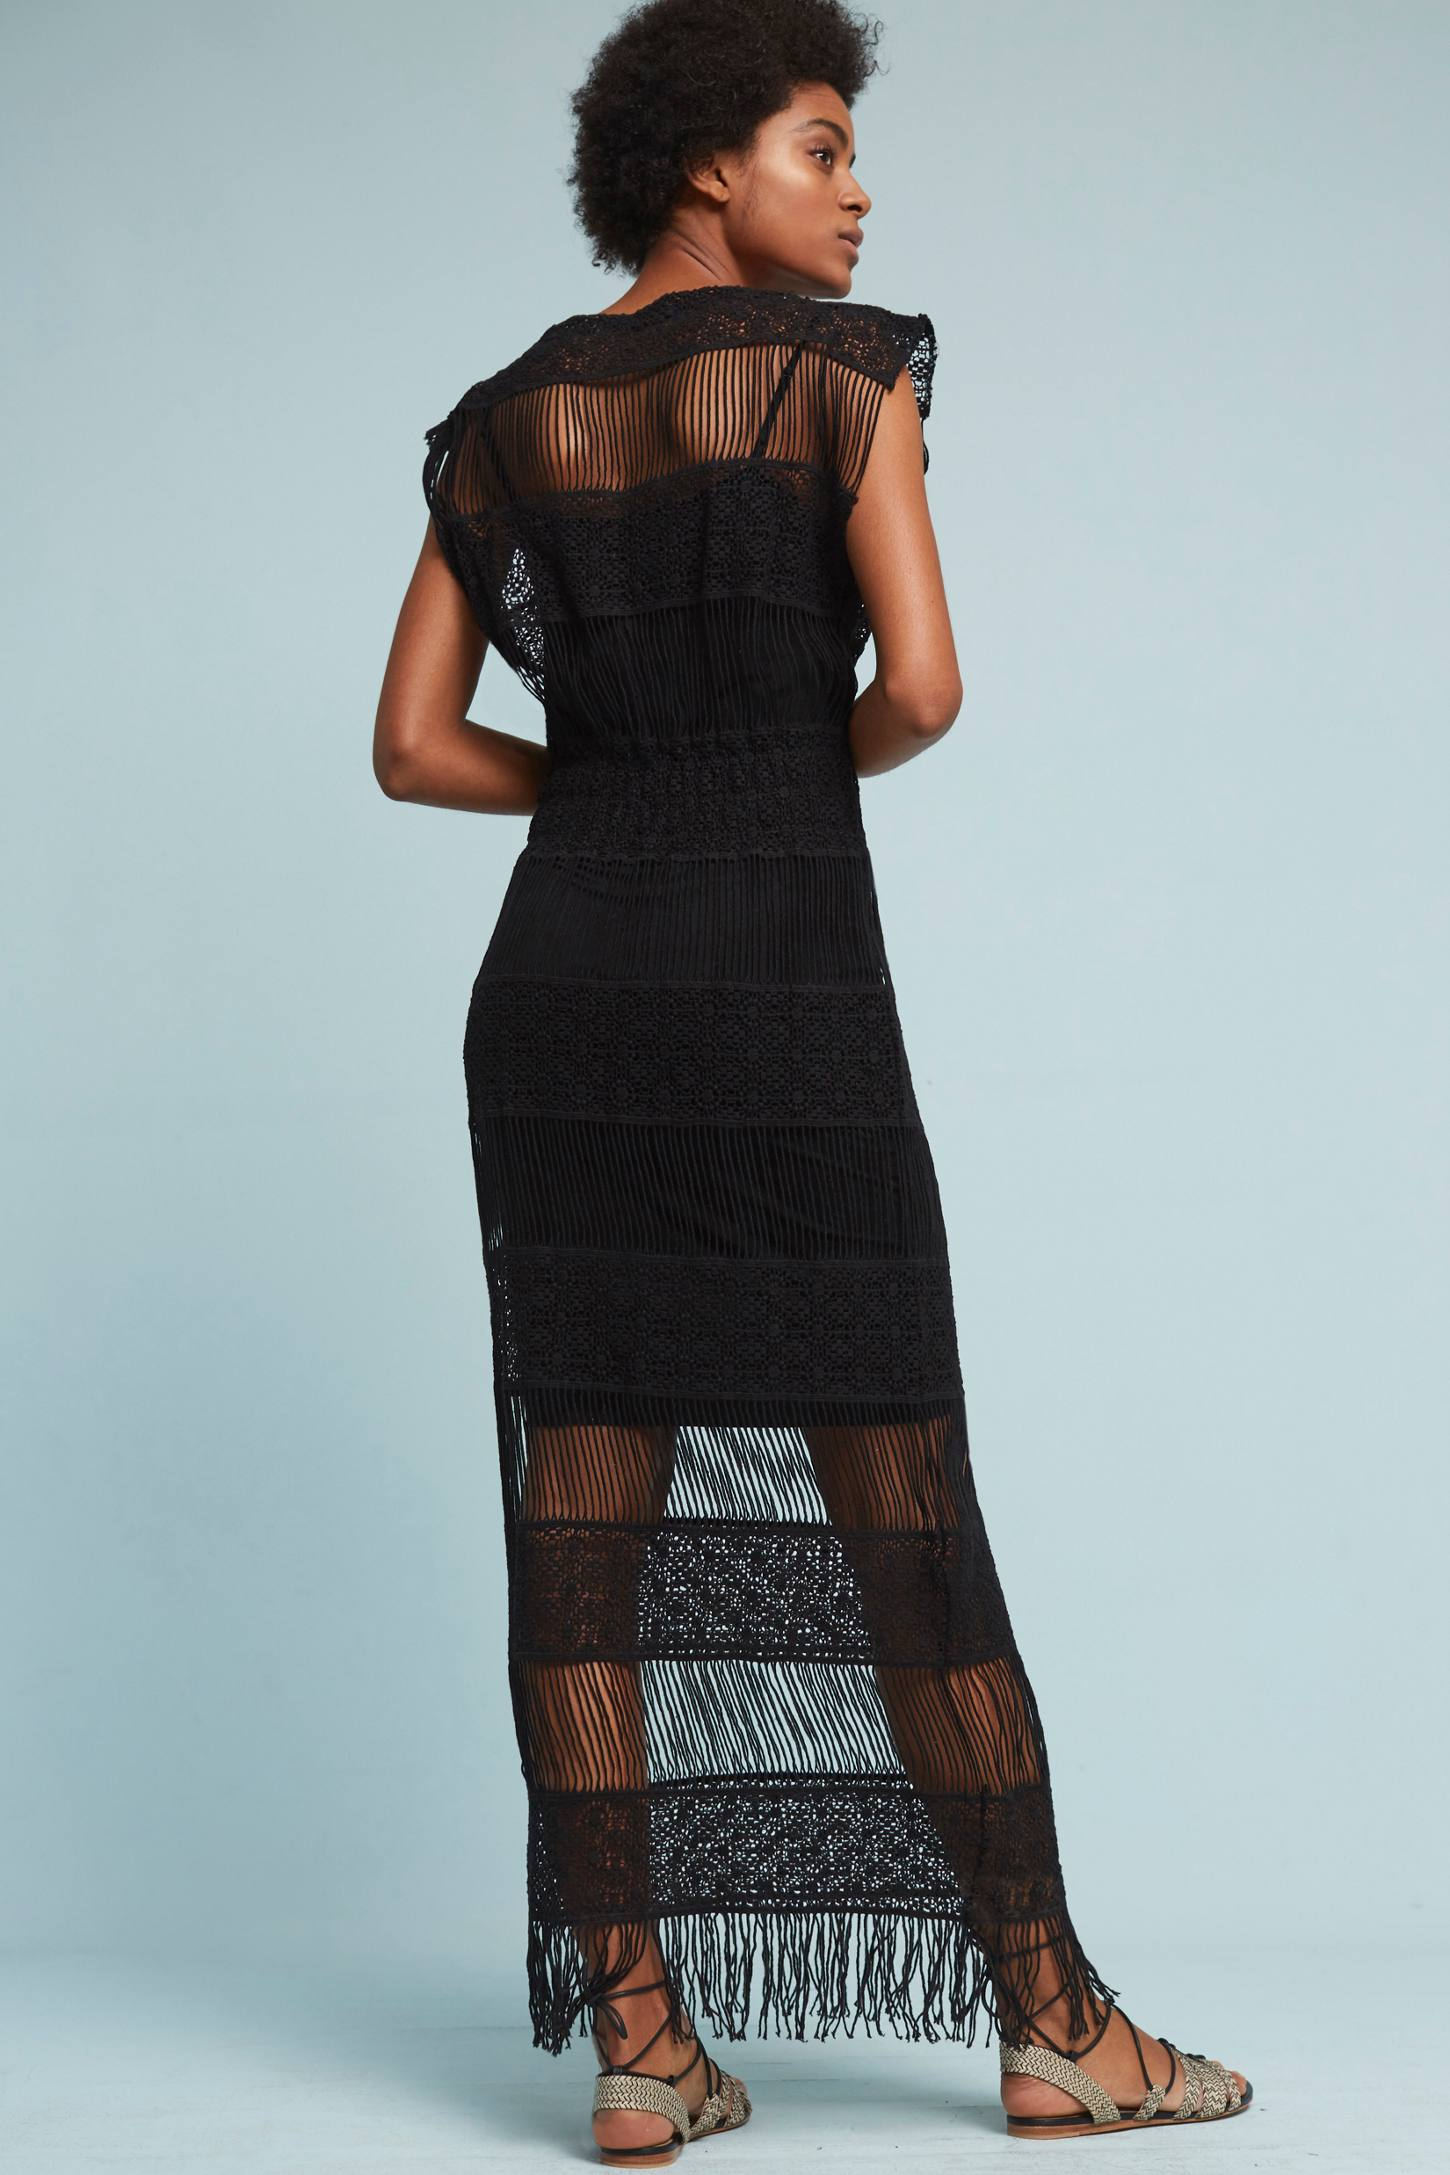 Slide View: 3: Amelia Crocheted Maxi Dress